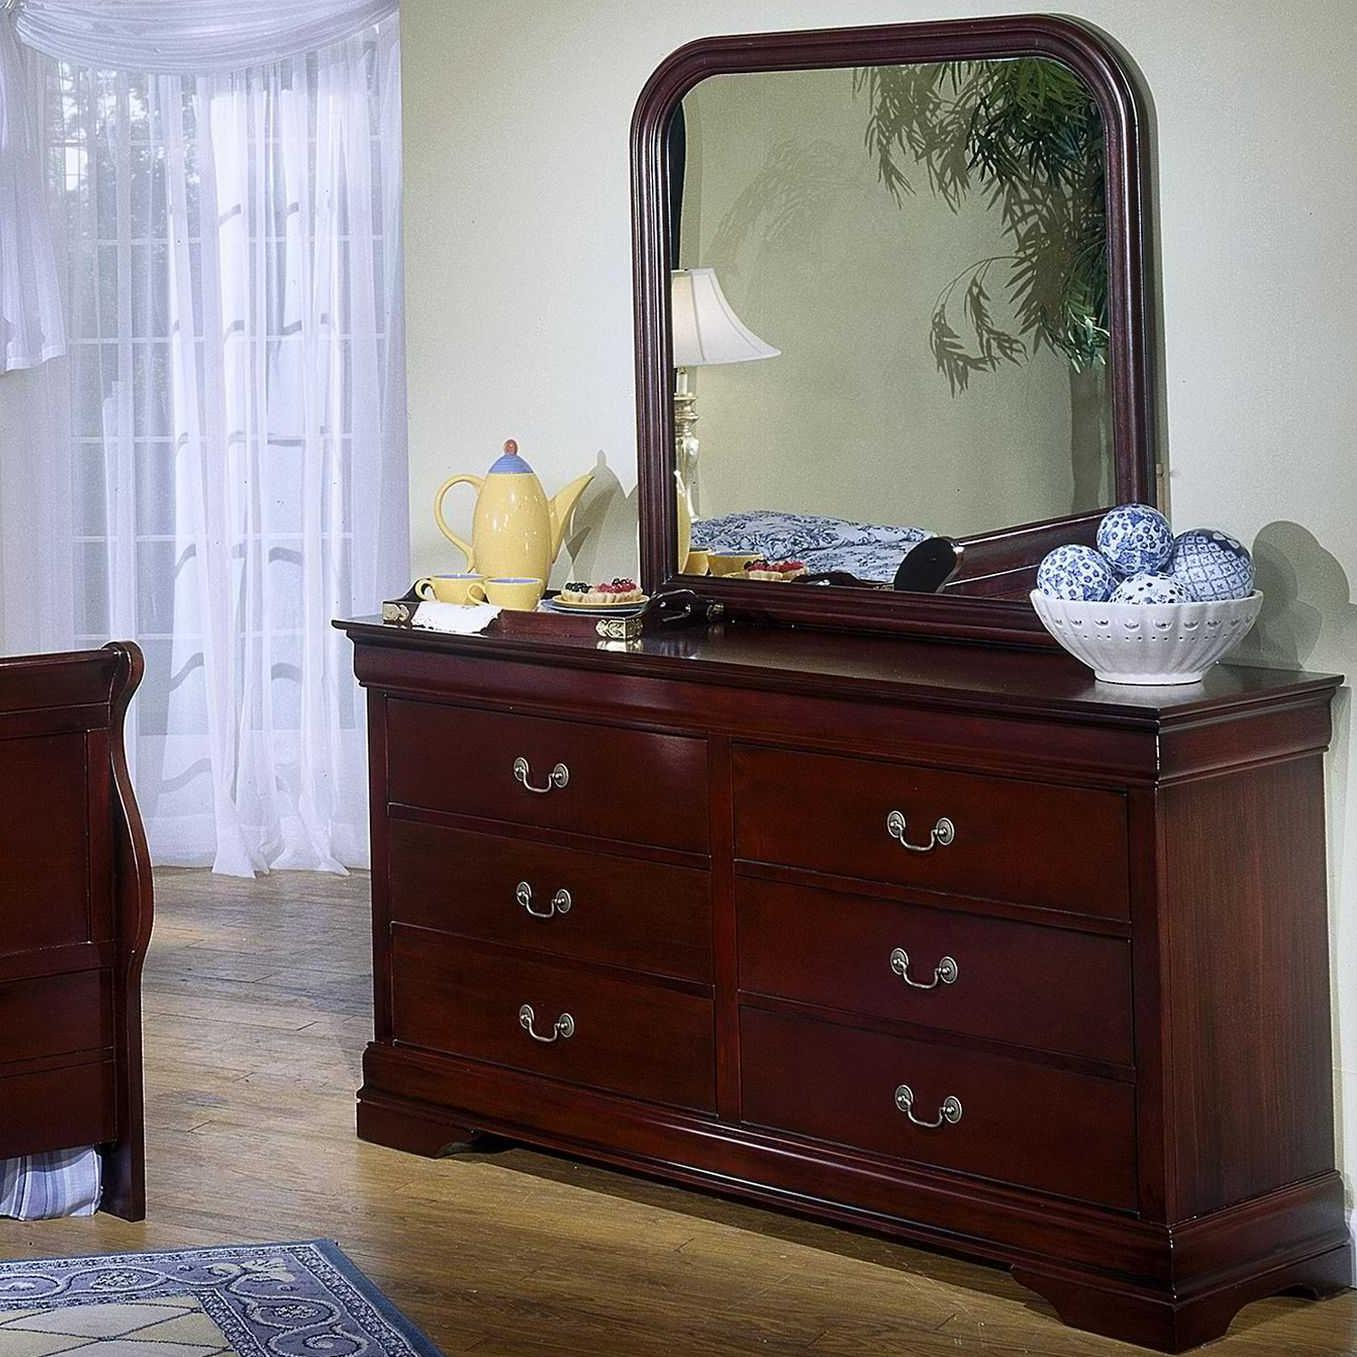 Lifestyle 5933 Dresser & Mirror Combo - Item Number: C5933K-040-6DCH+050-MHCH